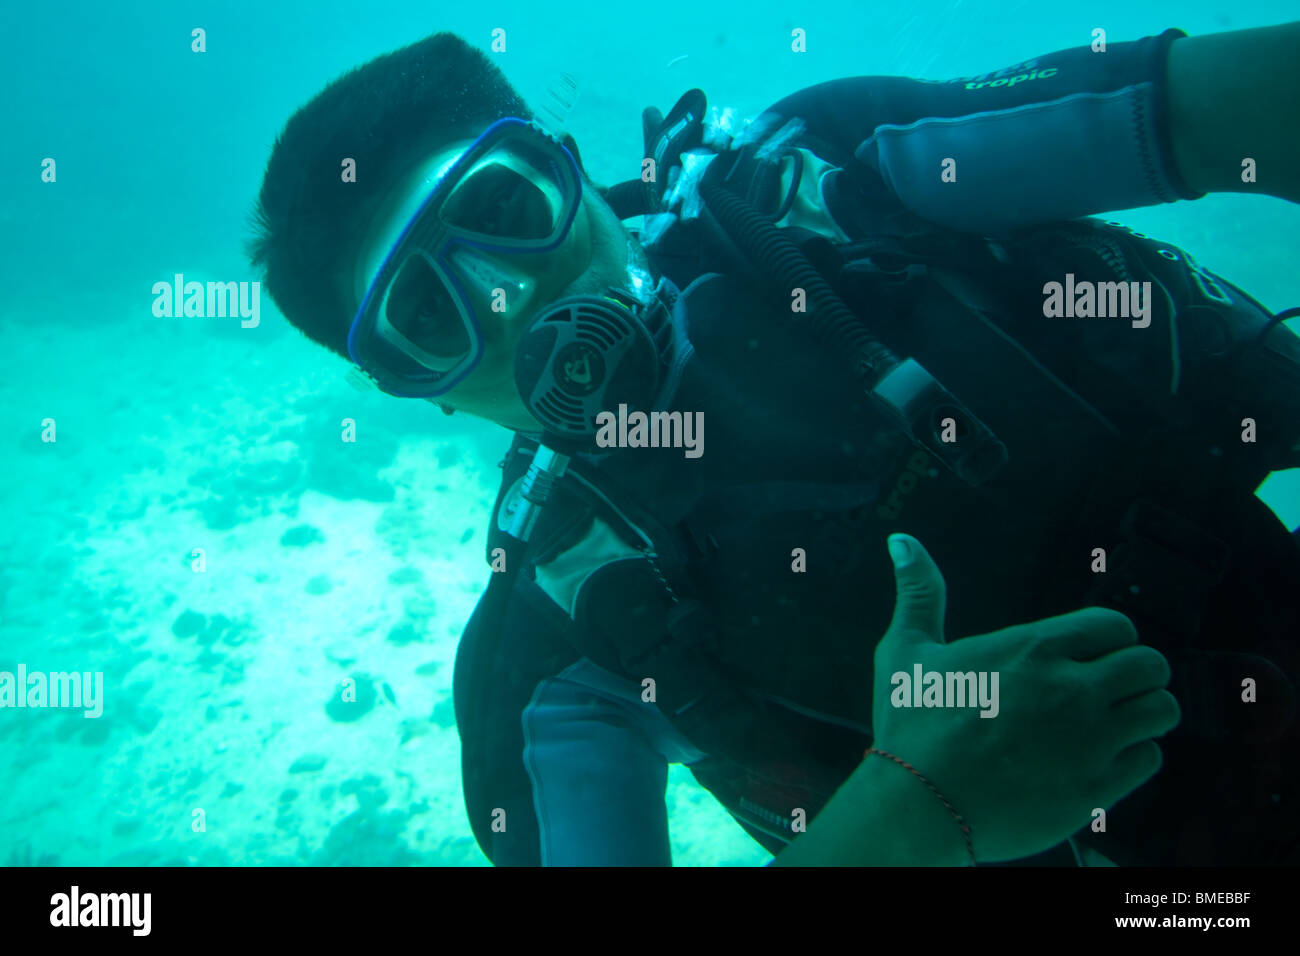 A diver signals OK from outside a tourist submarine underwater Stock Photo